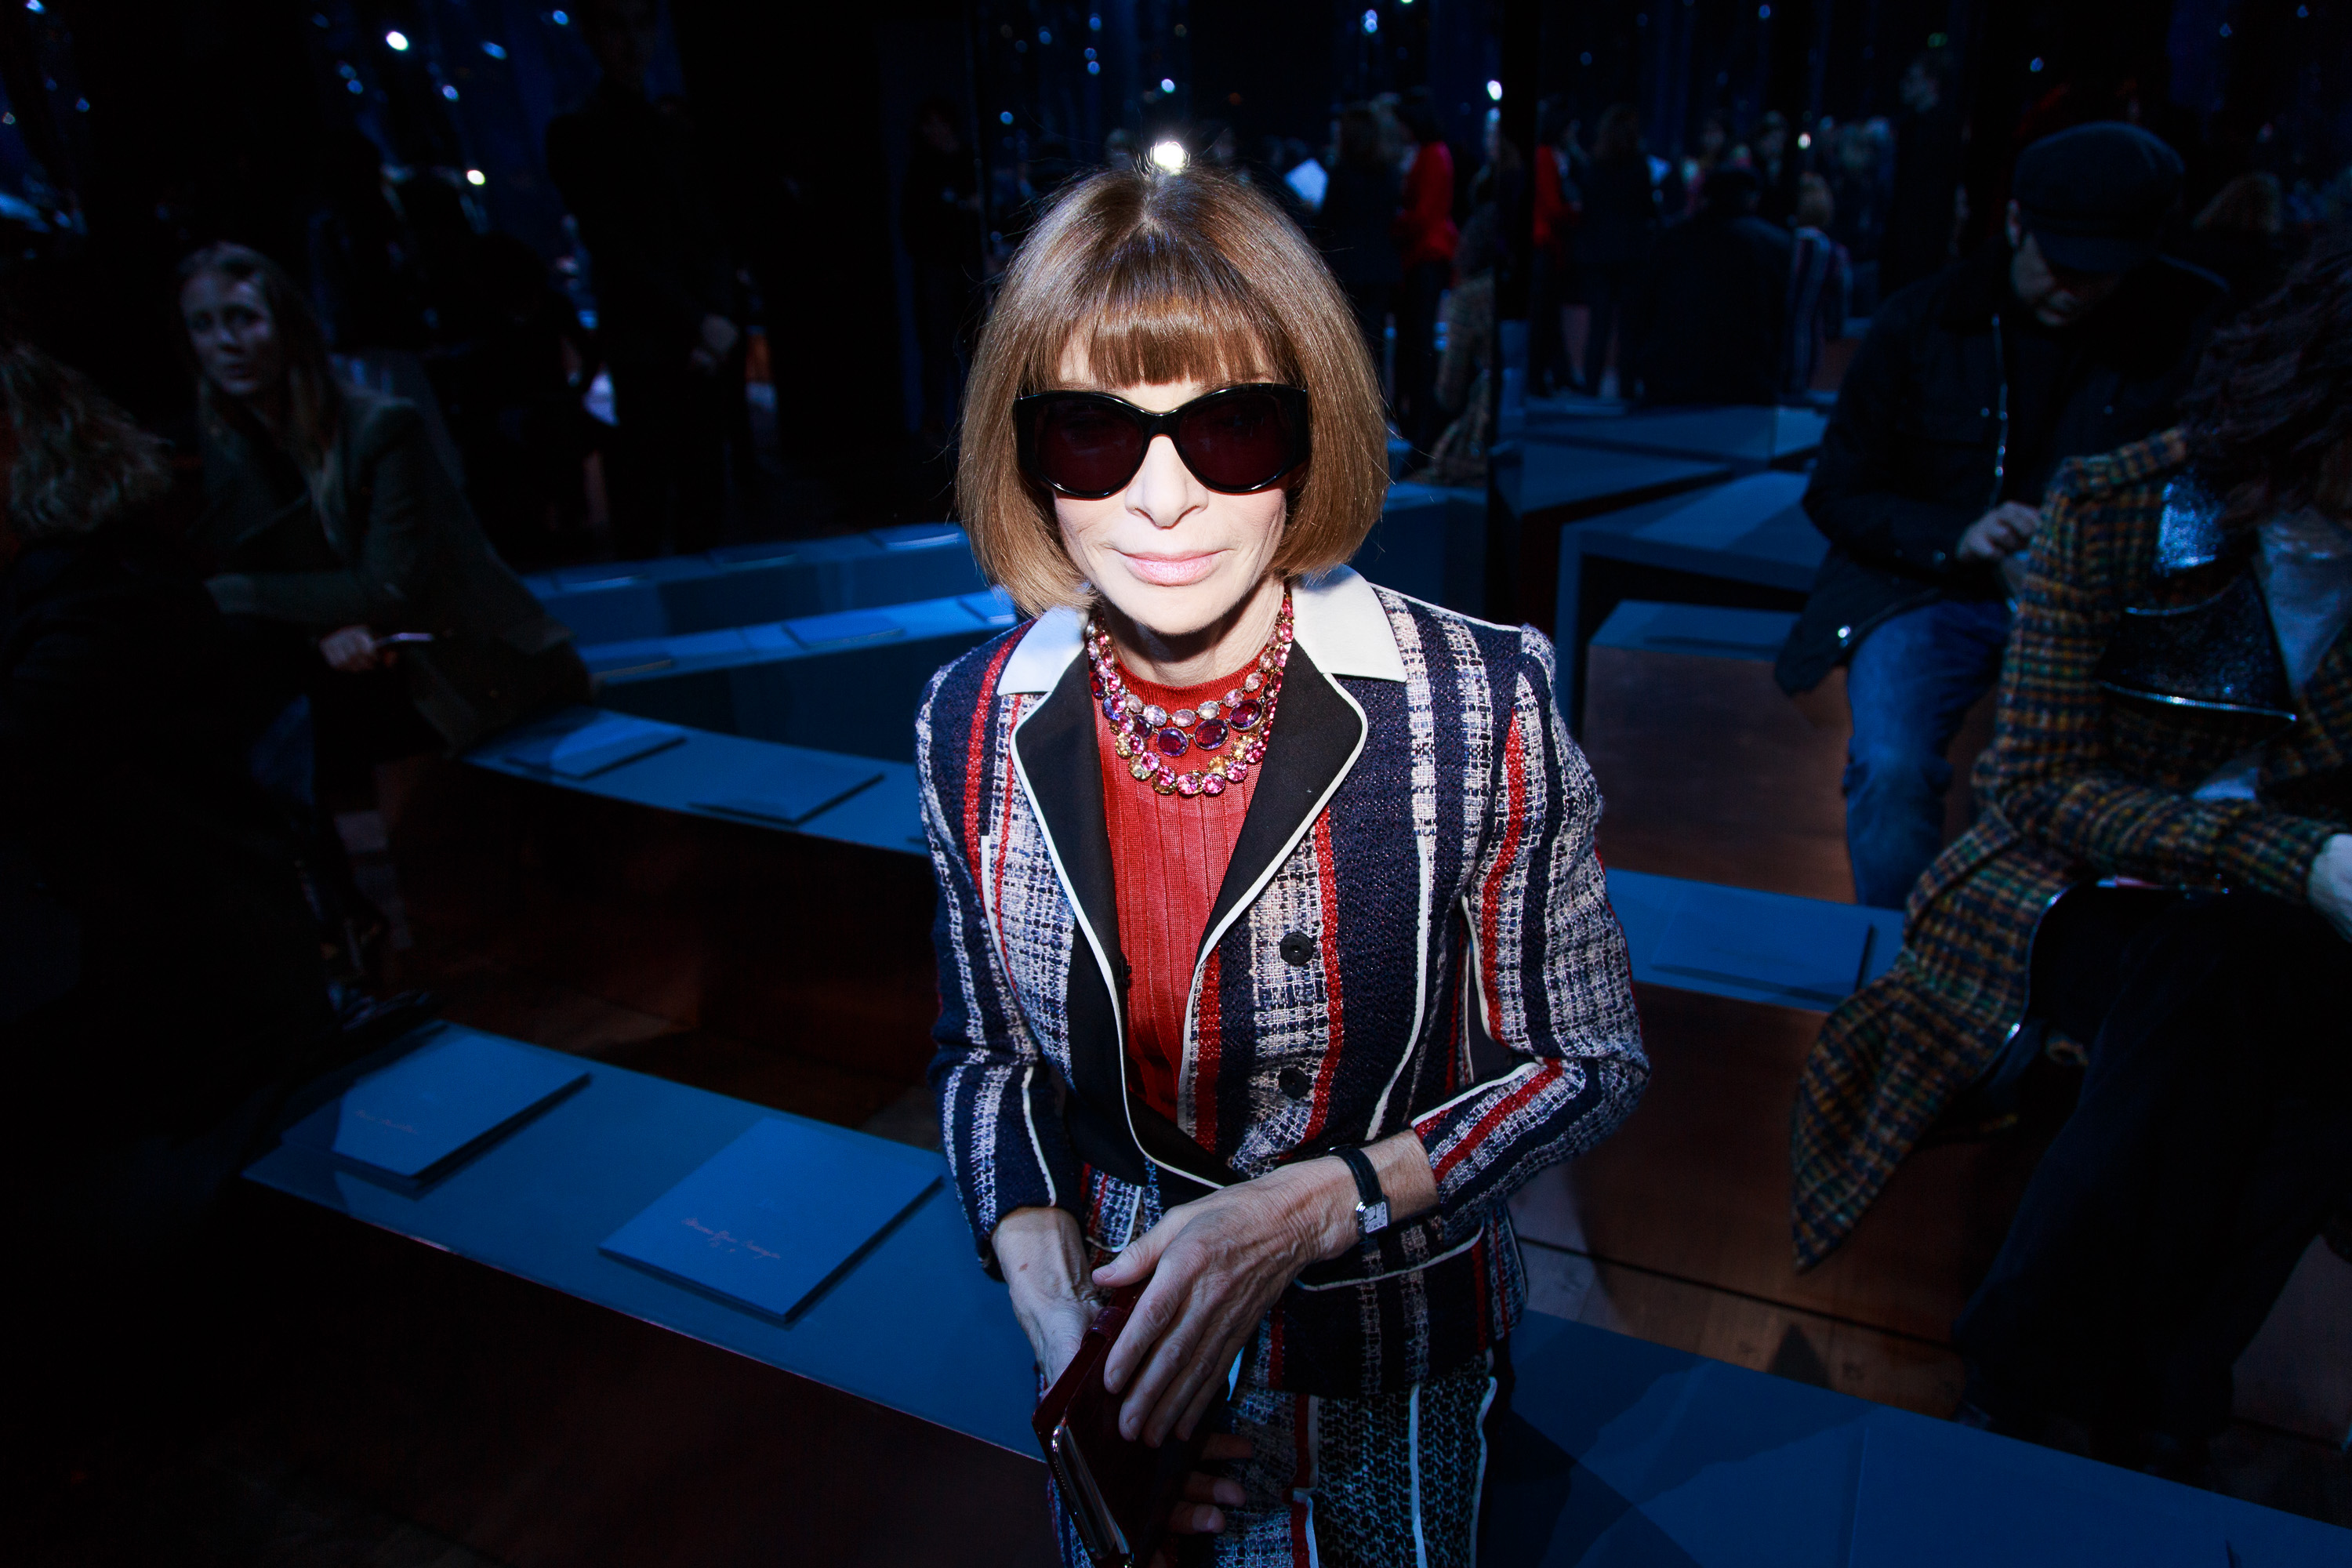 Anna Wintour attends the Christian Dior Haute Couture Spring Summer 2016 show as part of Paris Fashion Week  on January 25, 2016 in Paris, France.